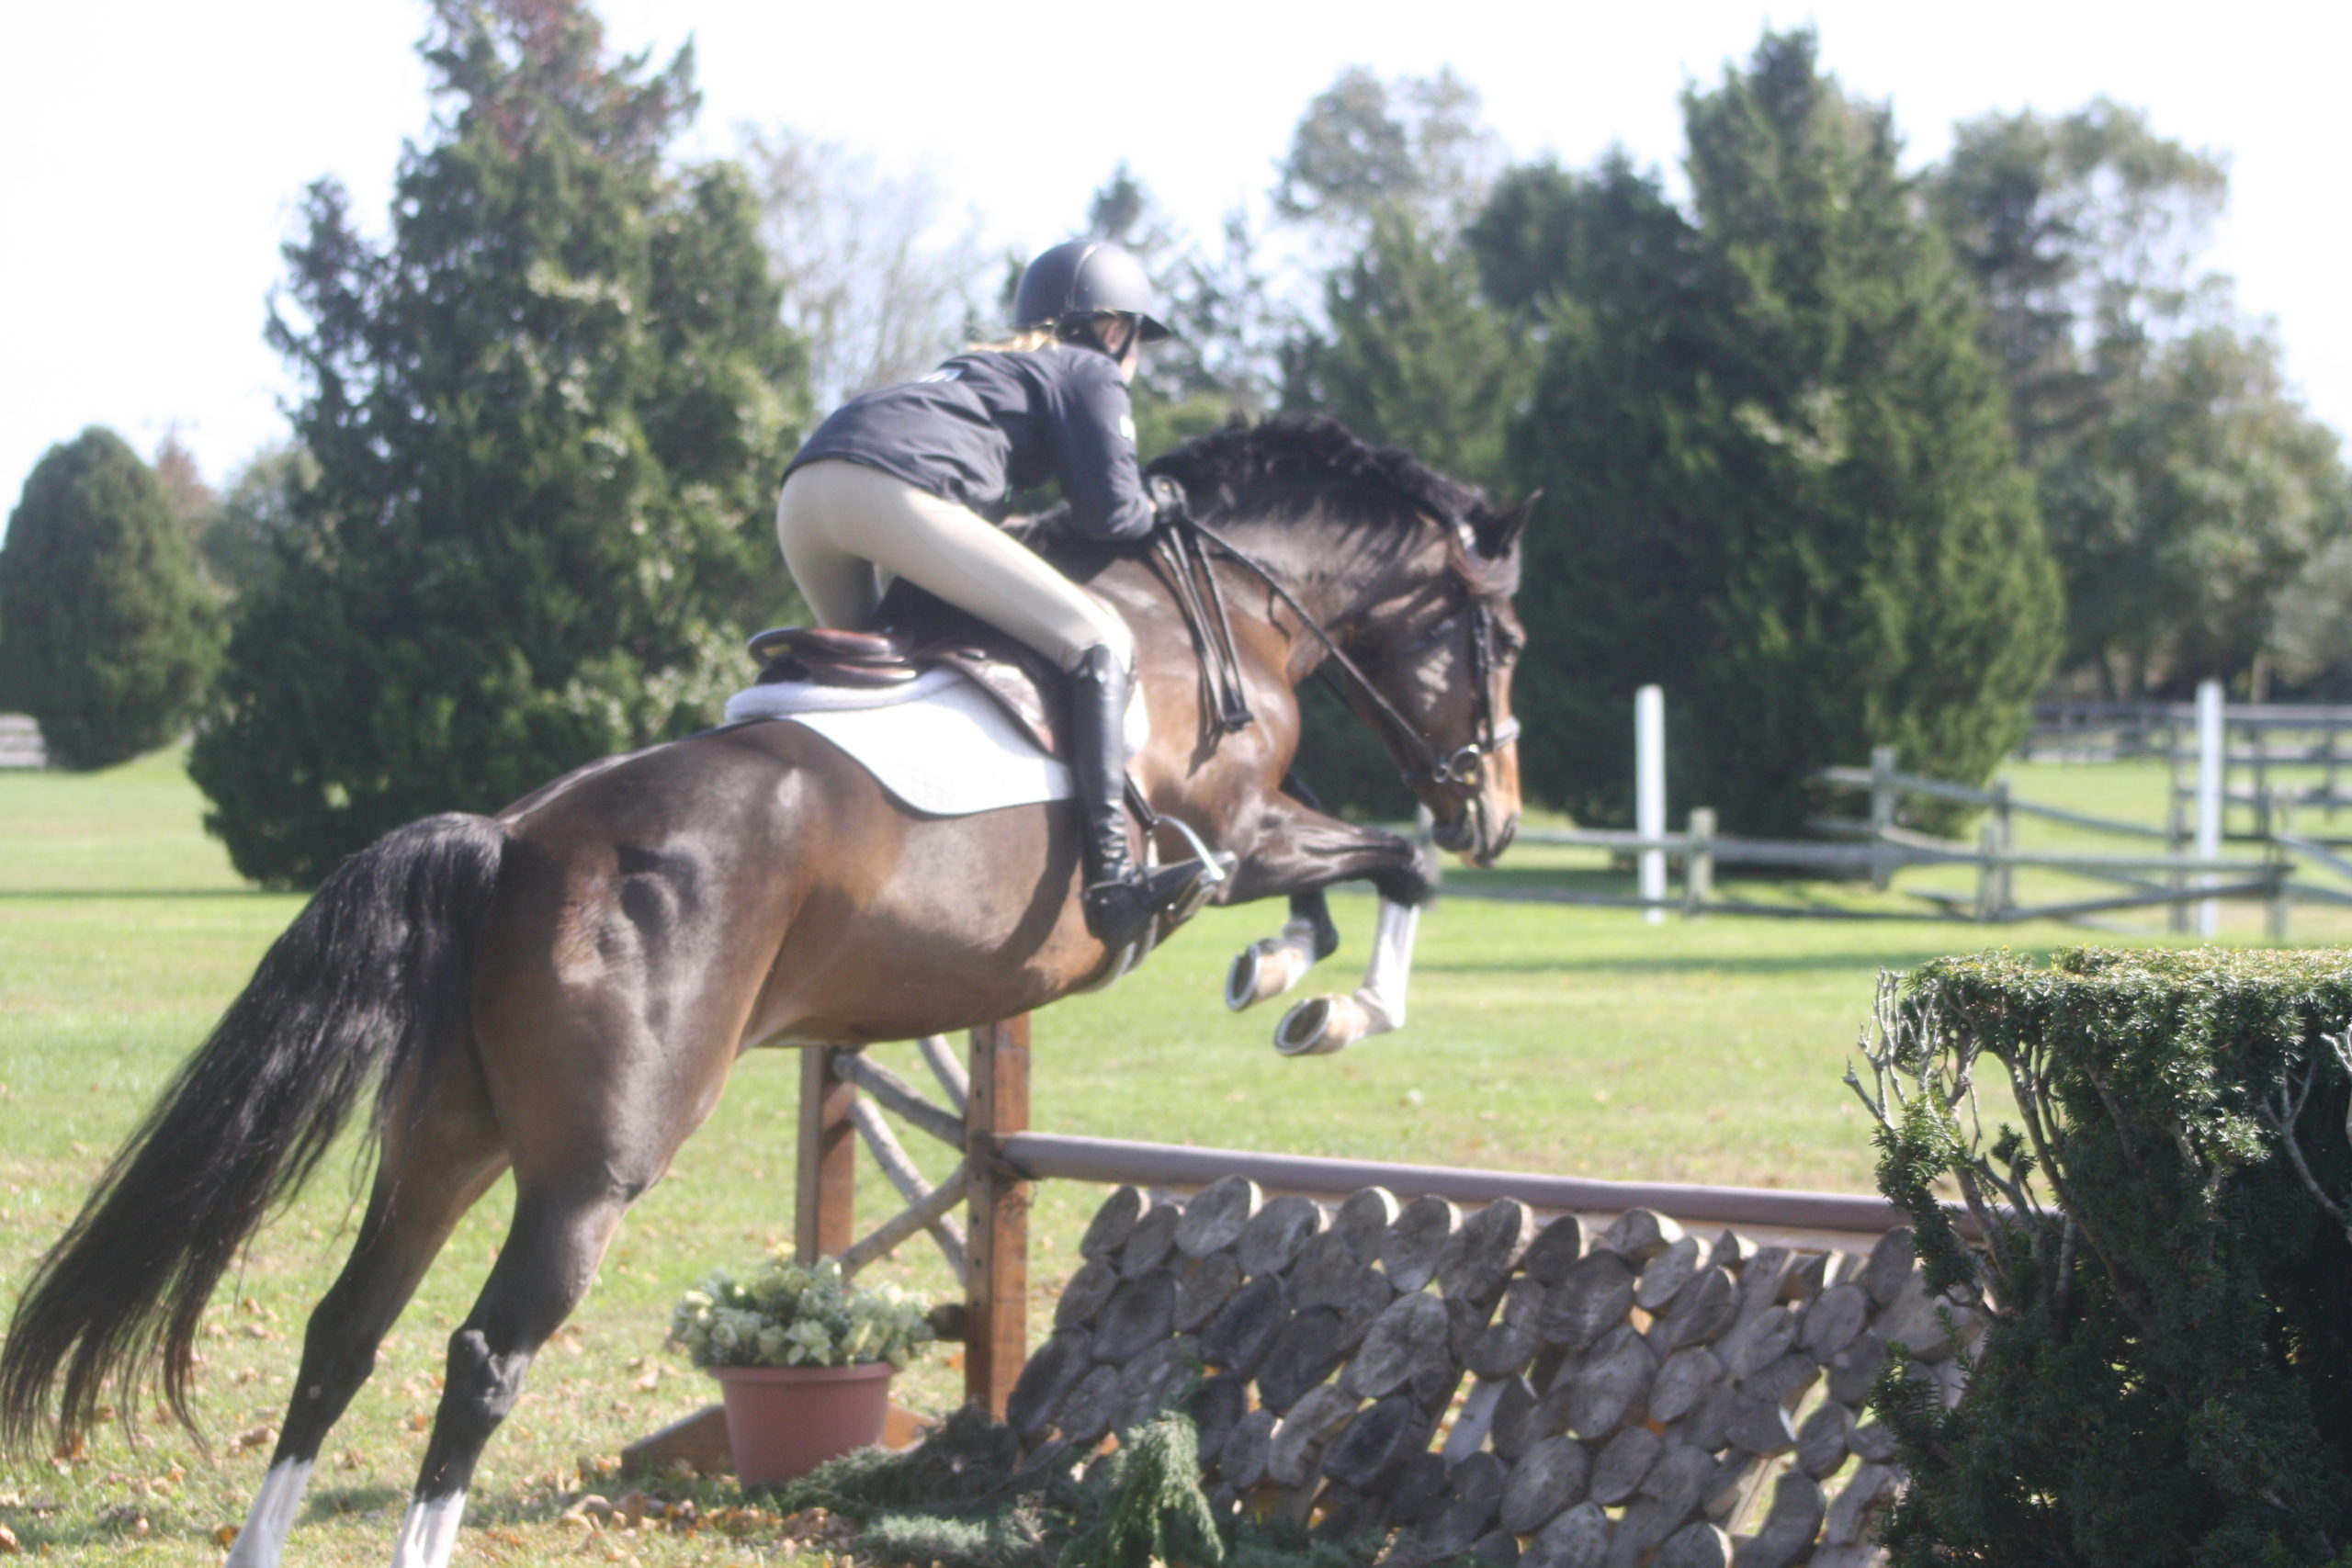 The jumps in the Grand Prix field are meant to mimic elements found in nature. CAILIN RILEY